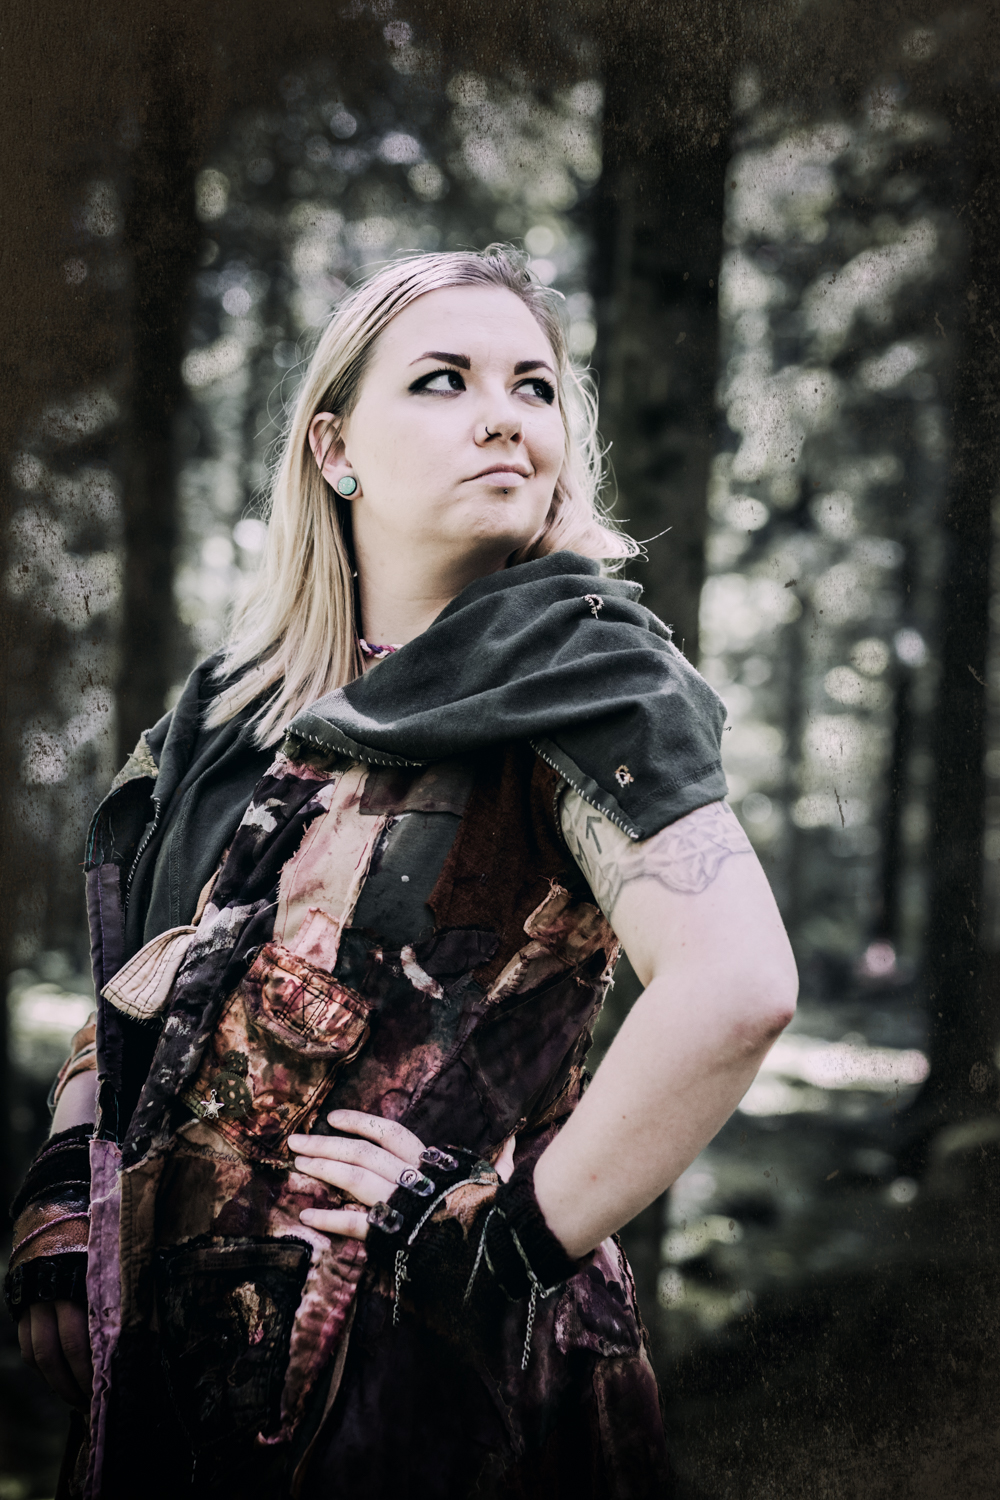 Fantasy Larp Cosplay Rollenspiel Portrait Fotografie  Kostüm Fotograf kreativ Wien Vogt Wangen Ravensburg Fantasievoll Fine Art Shooting Model Photoshop Bildbearbeitung Endzeit Postapokalyptisch Kriegerin